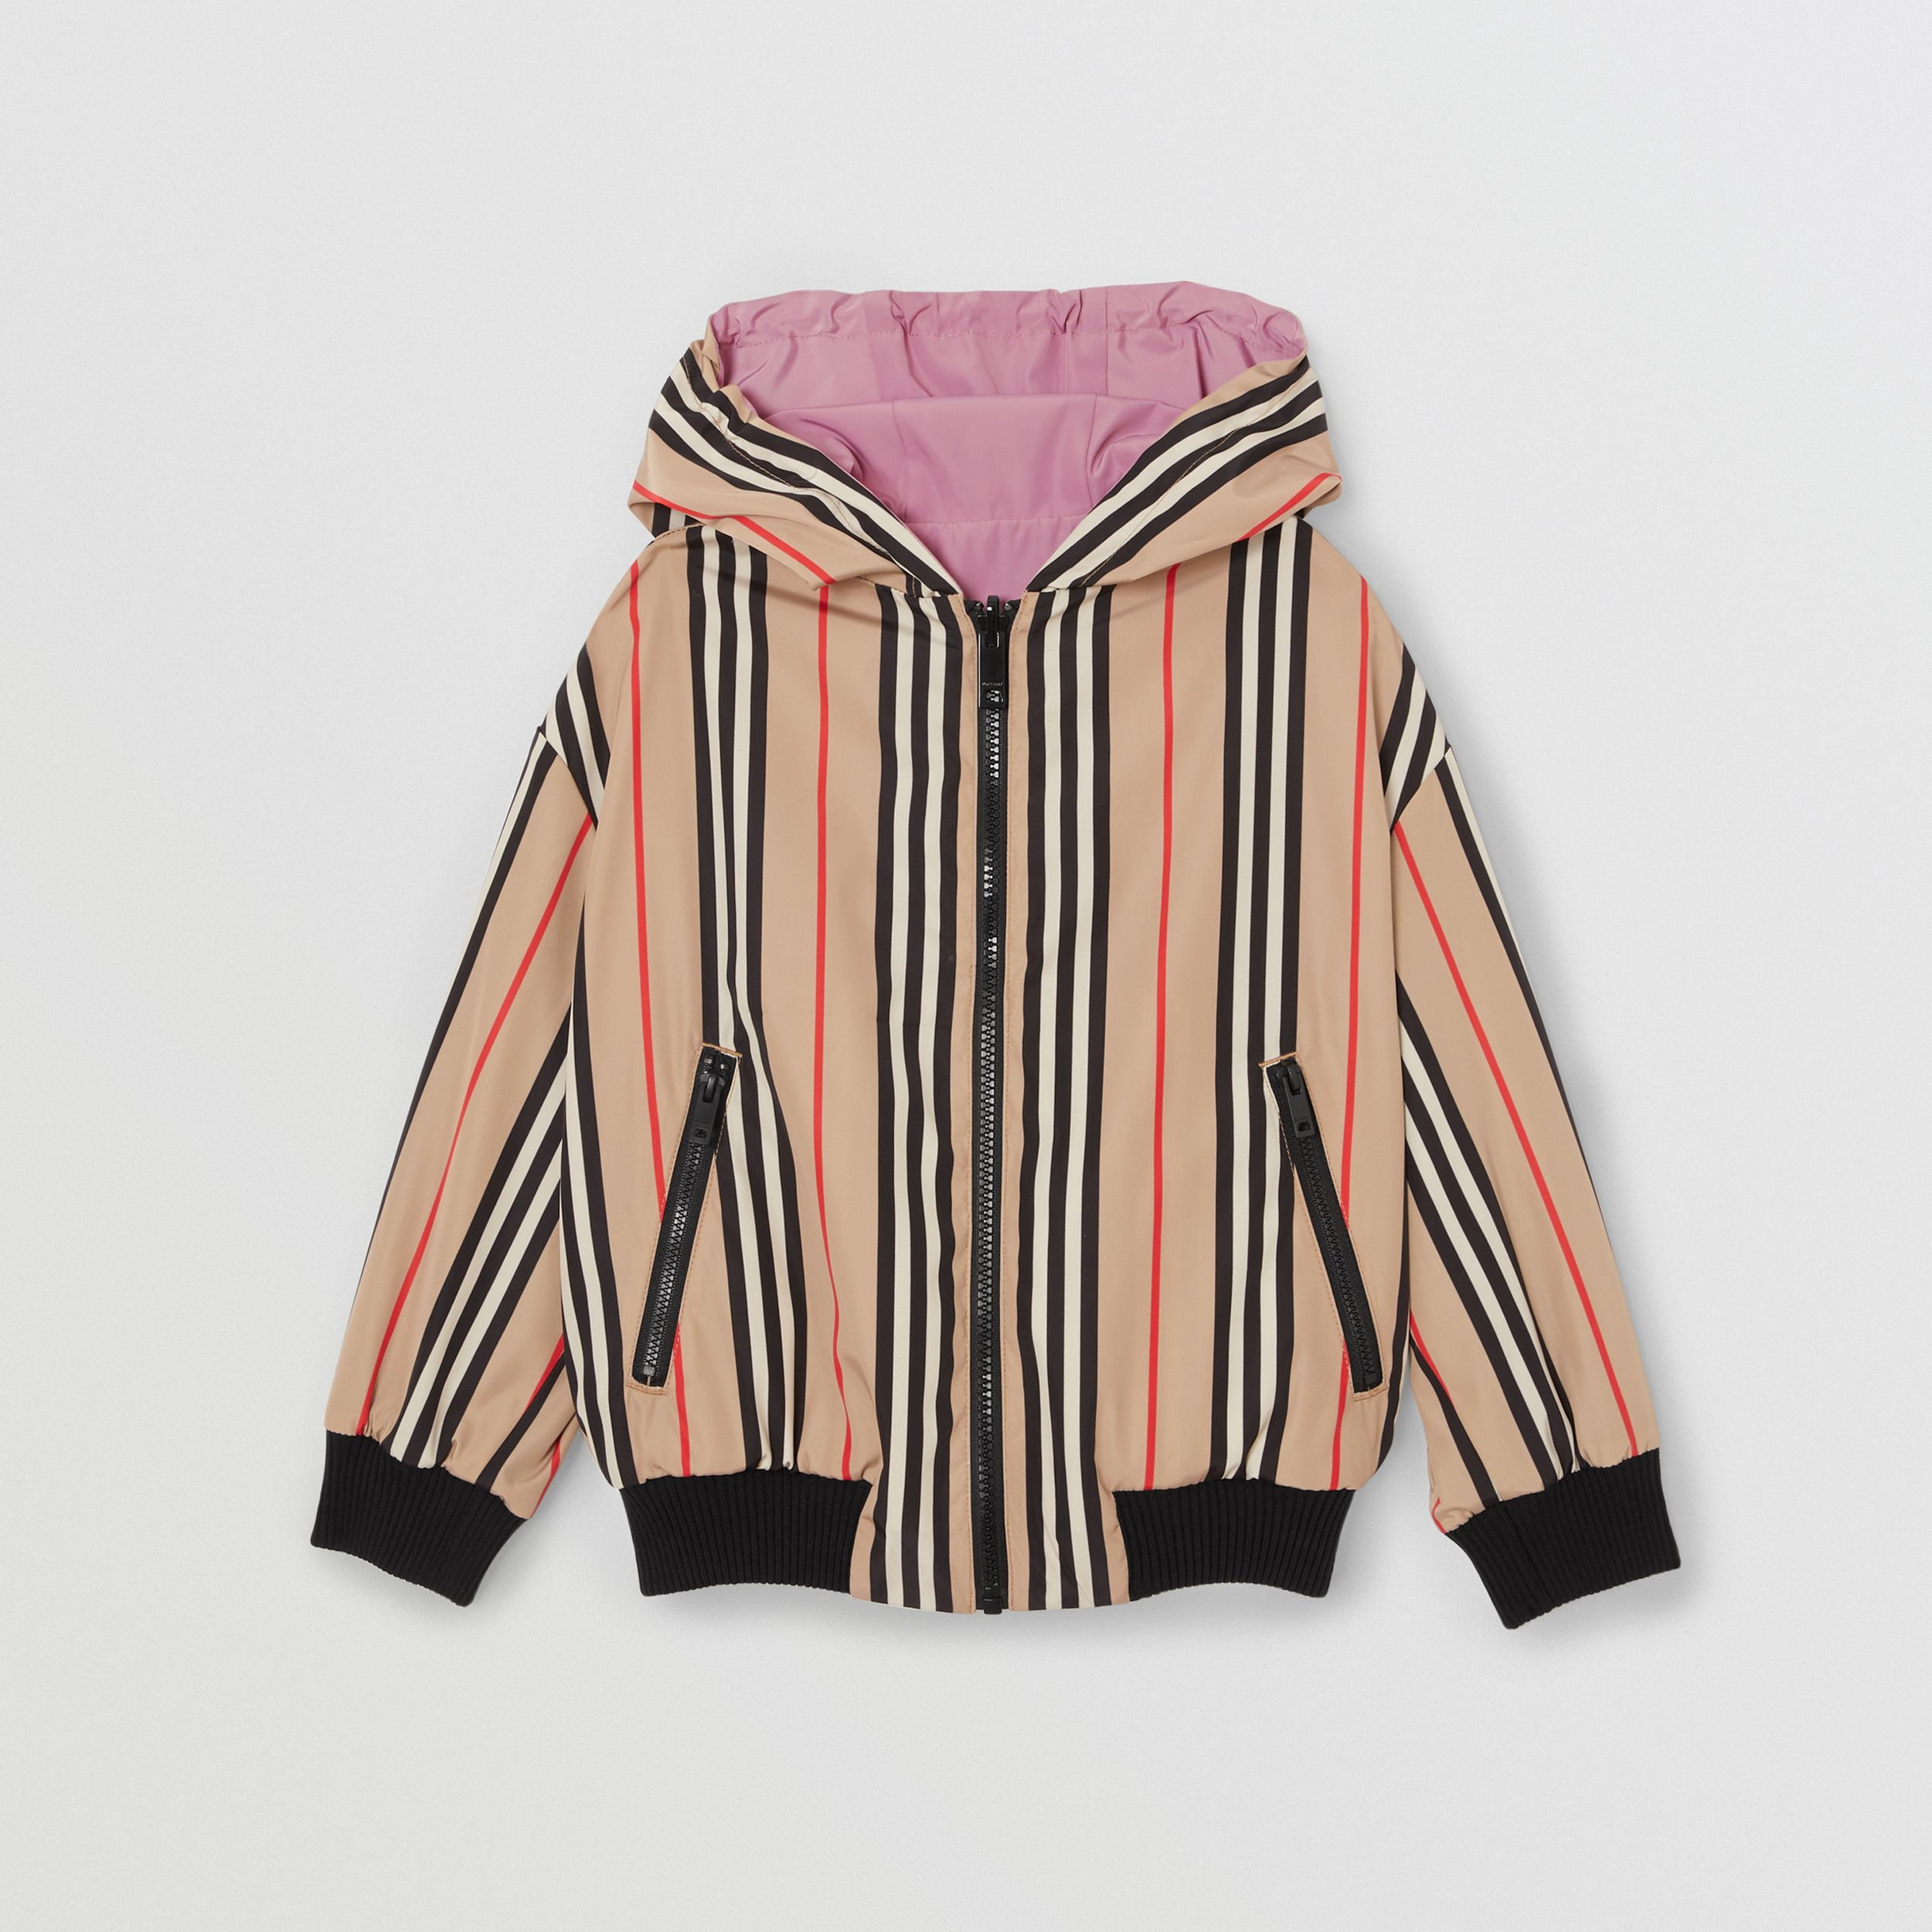 Reversible Icon Stripe Hooded Jacket in Pale Mauve | Burberry - 4